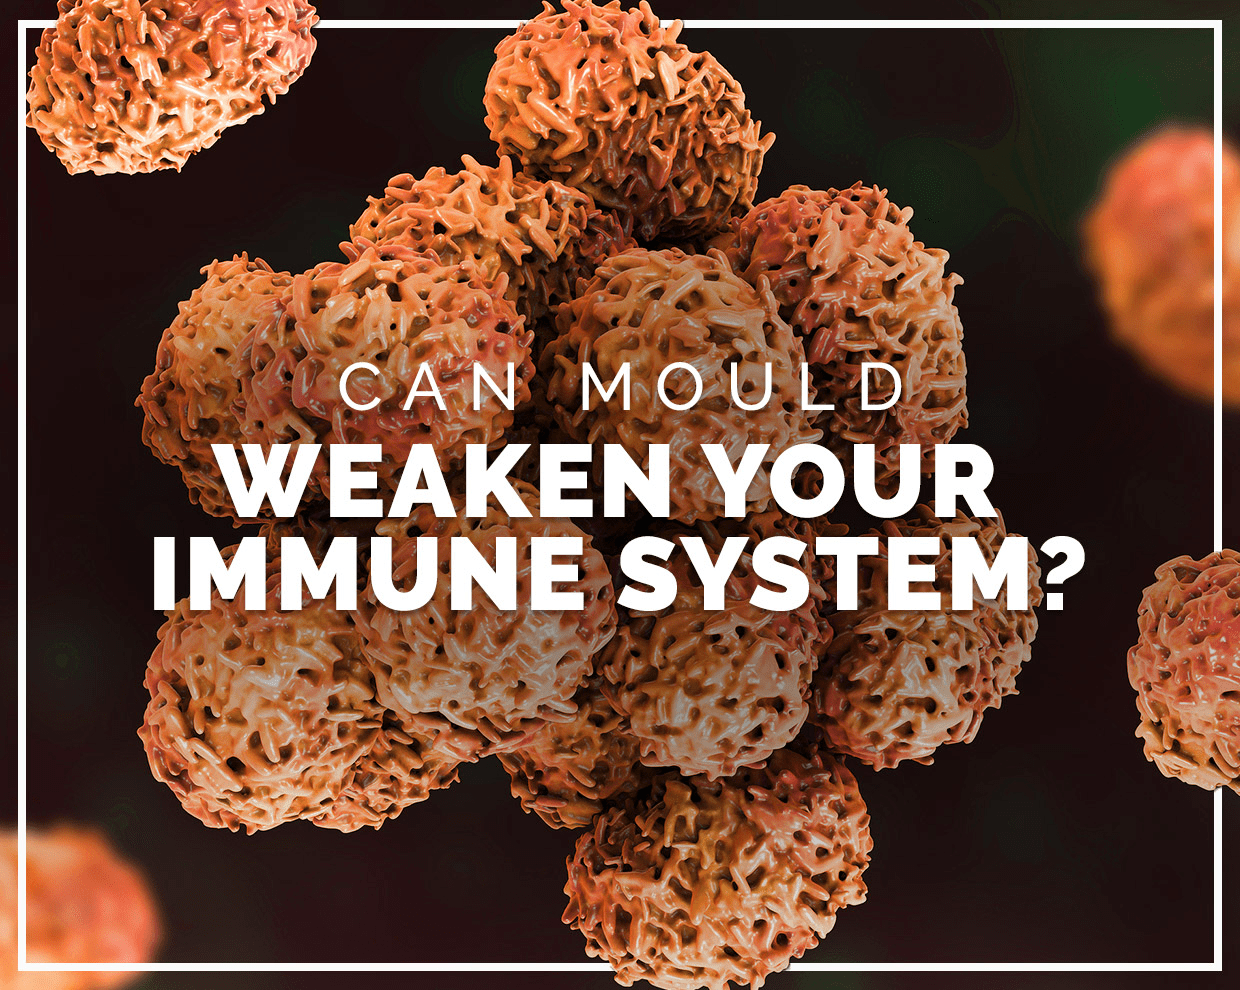 Can mould weaken your immune system?